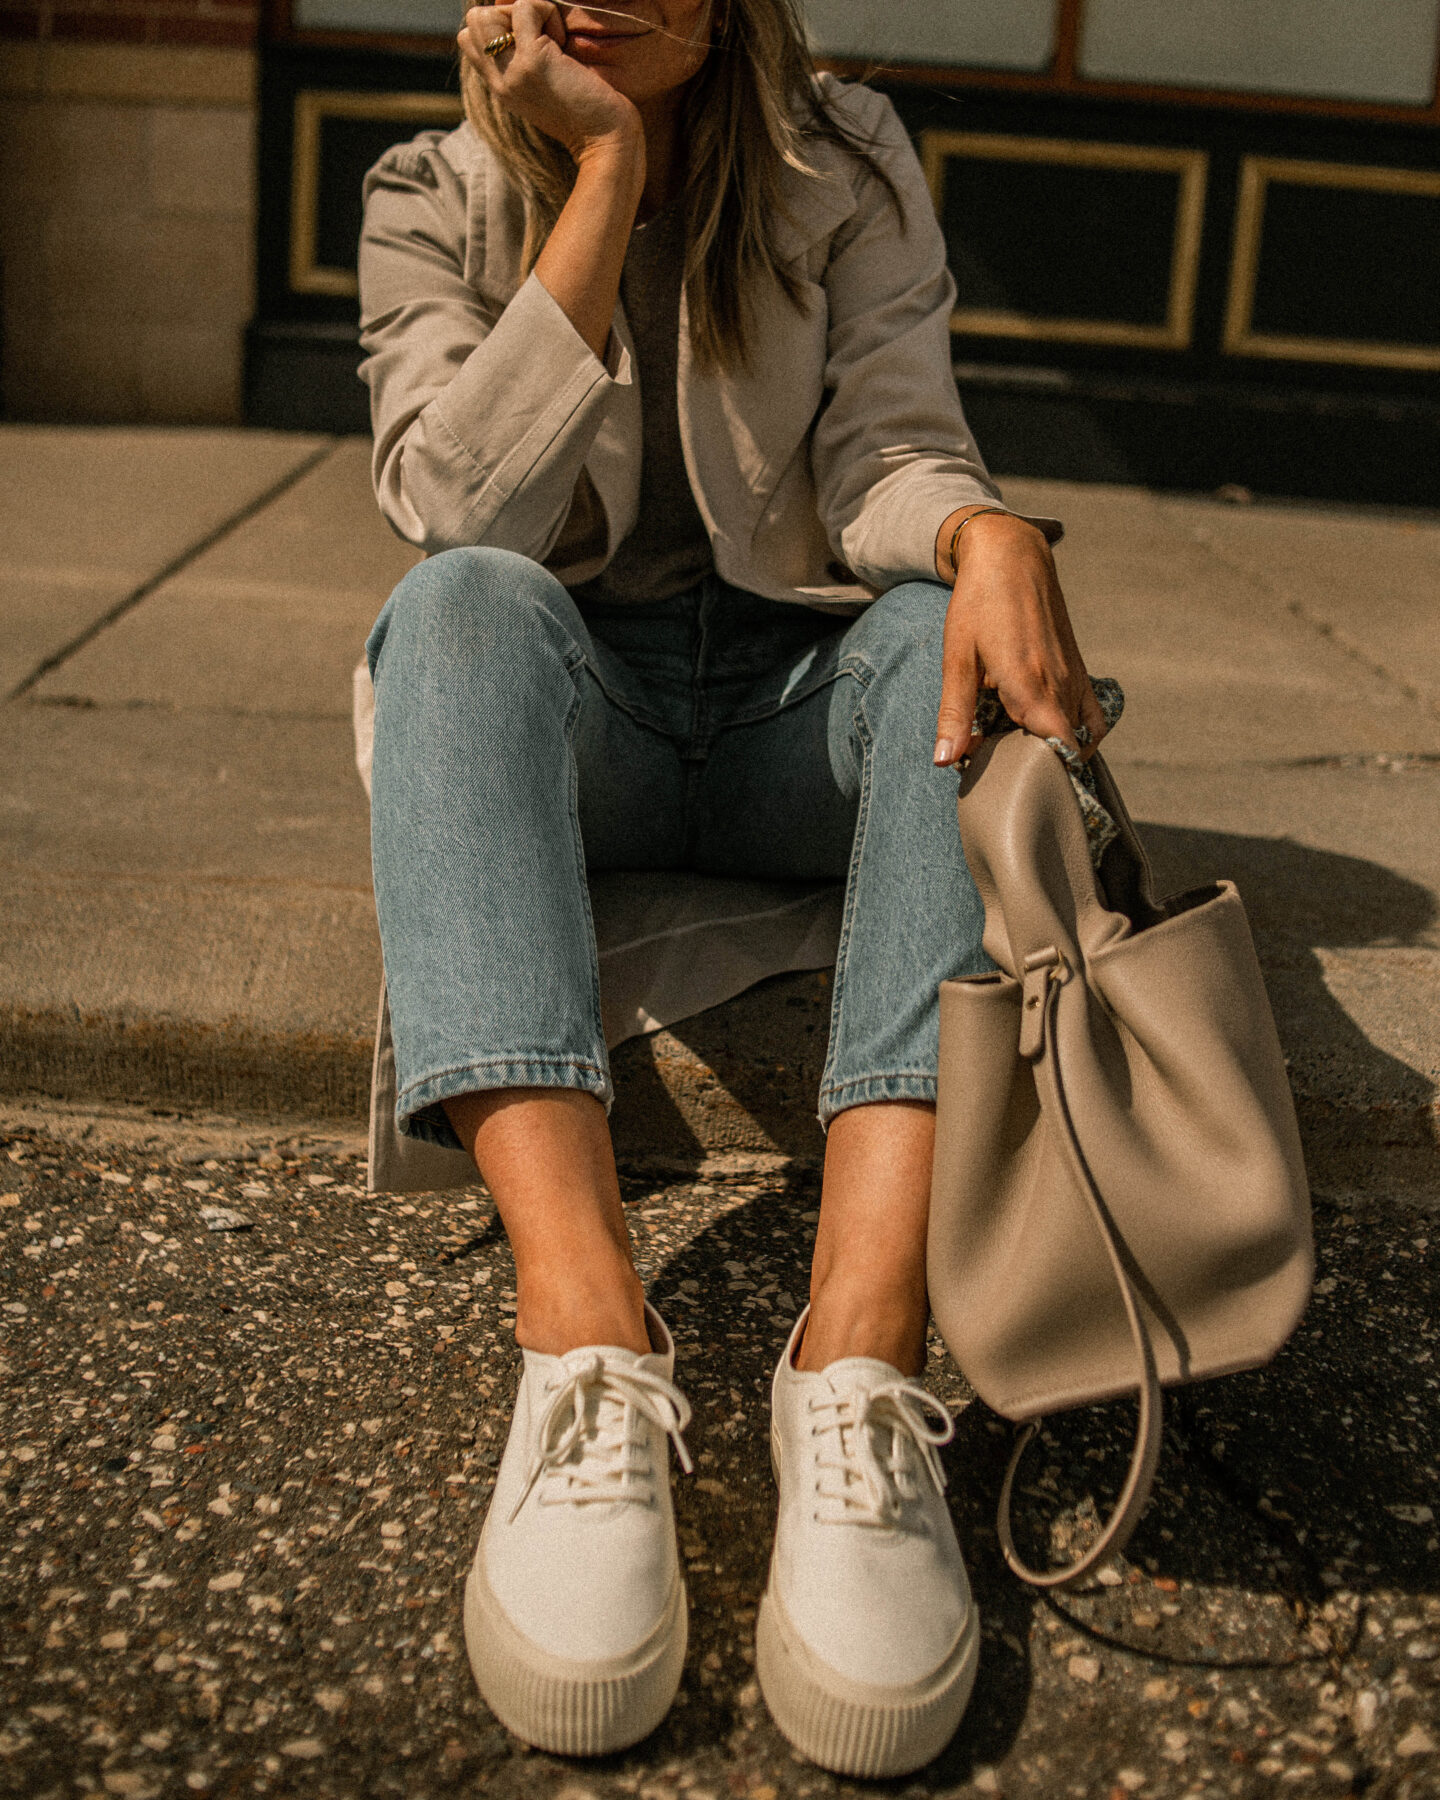 new in at everlane, everlane reviews, everlane spring and summer